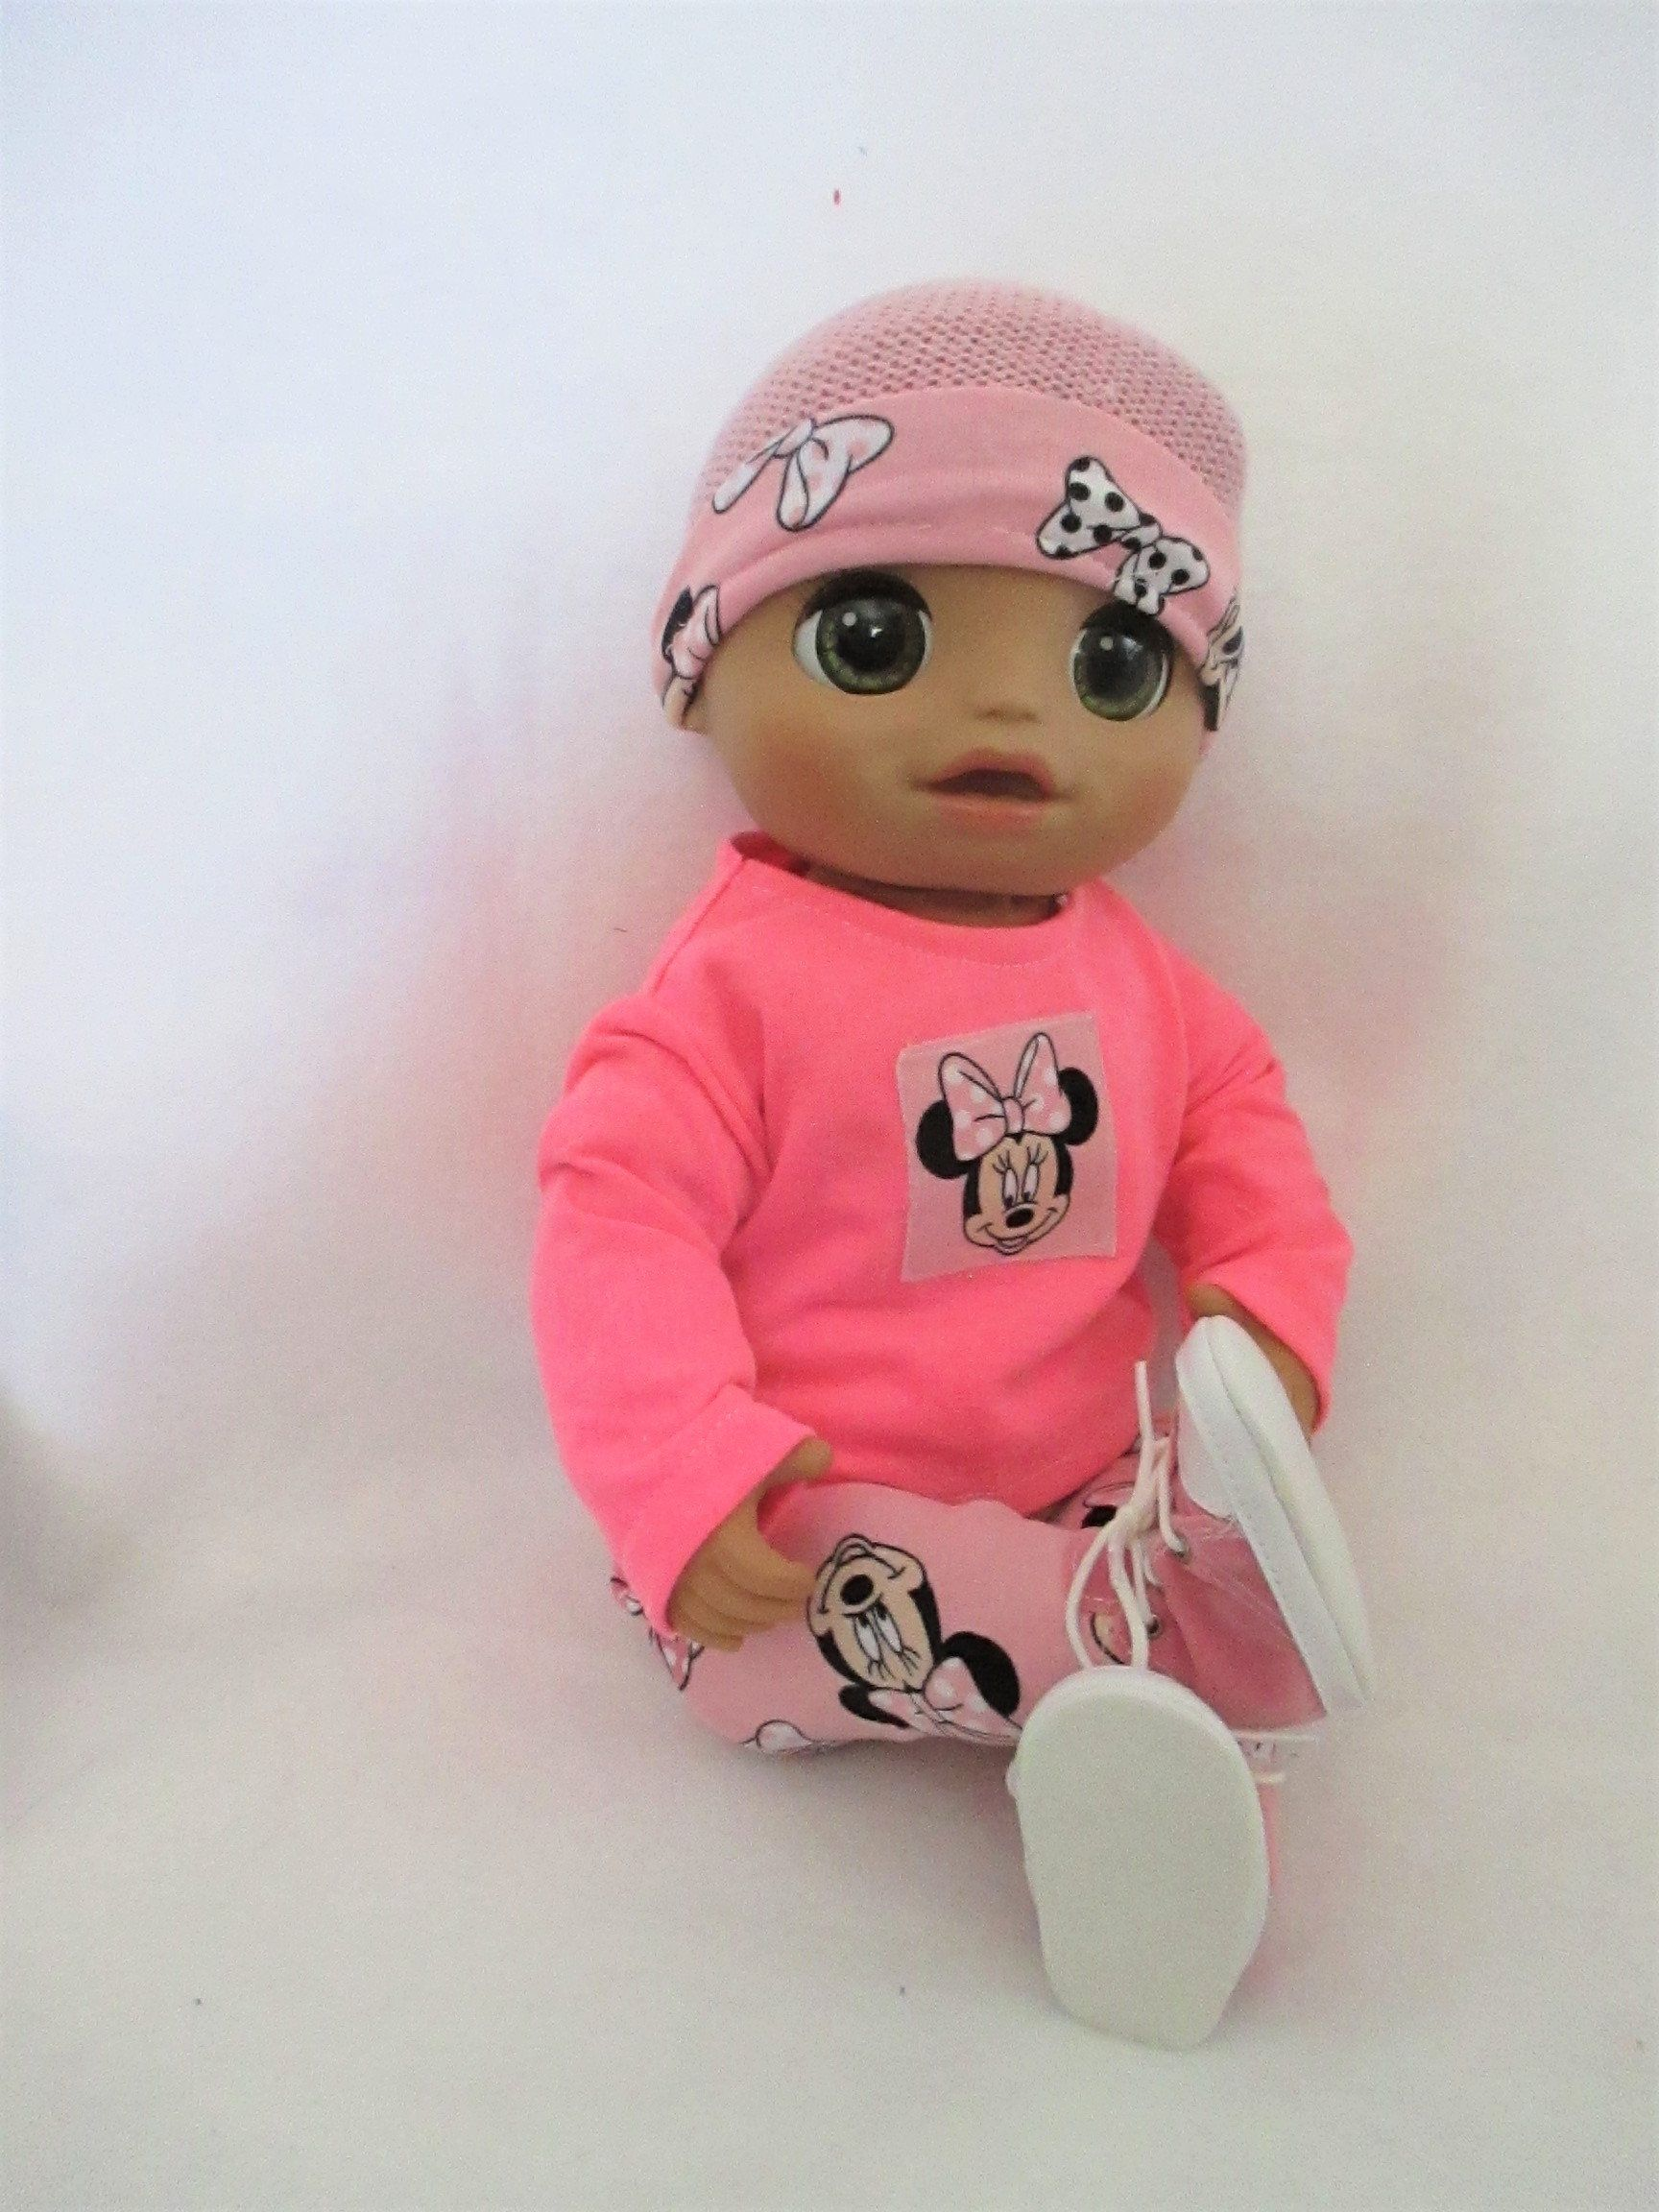 Baby Alive Clothes As Real As Can Be Doll Outfit 4 Pc Minnie Mouse Hat Cotton Tee Leggings Pink Tennis Sh Baby Alive Doll Clothes Baby Alive Baby Alive Dolls